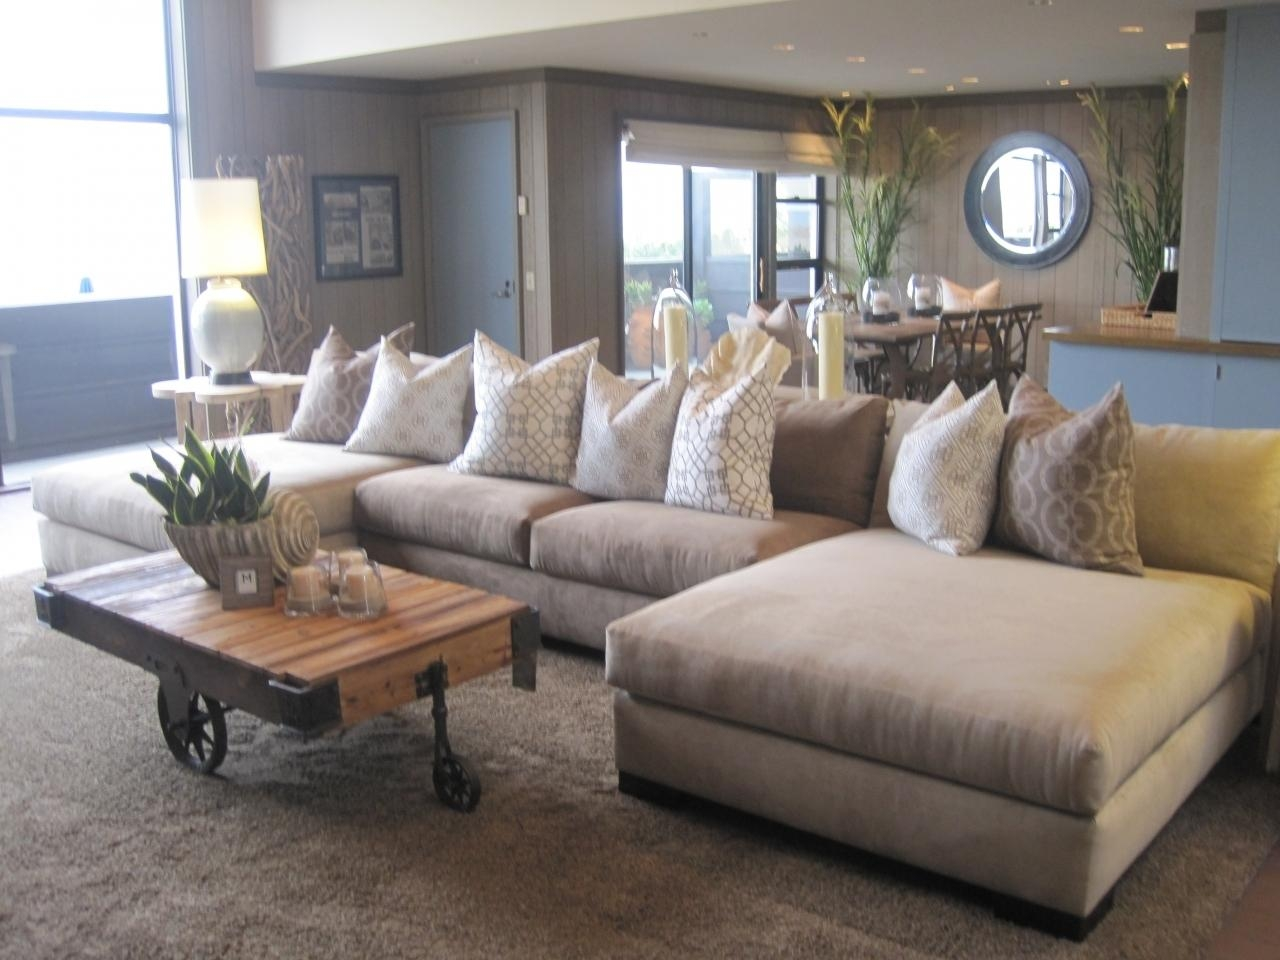 Sofas Center : Large Sectional Sofas With Ottoman Wilmington In Sectional Sofa With Large Ottoman (View 12 of 20)